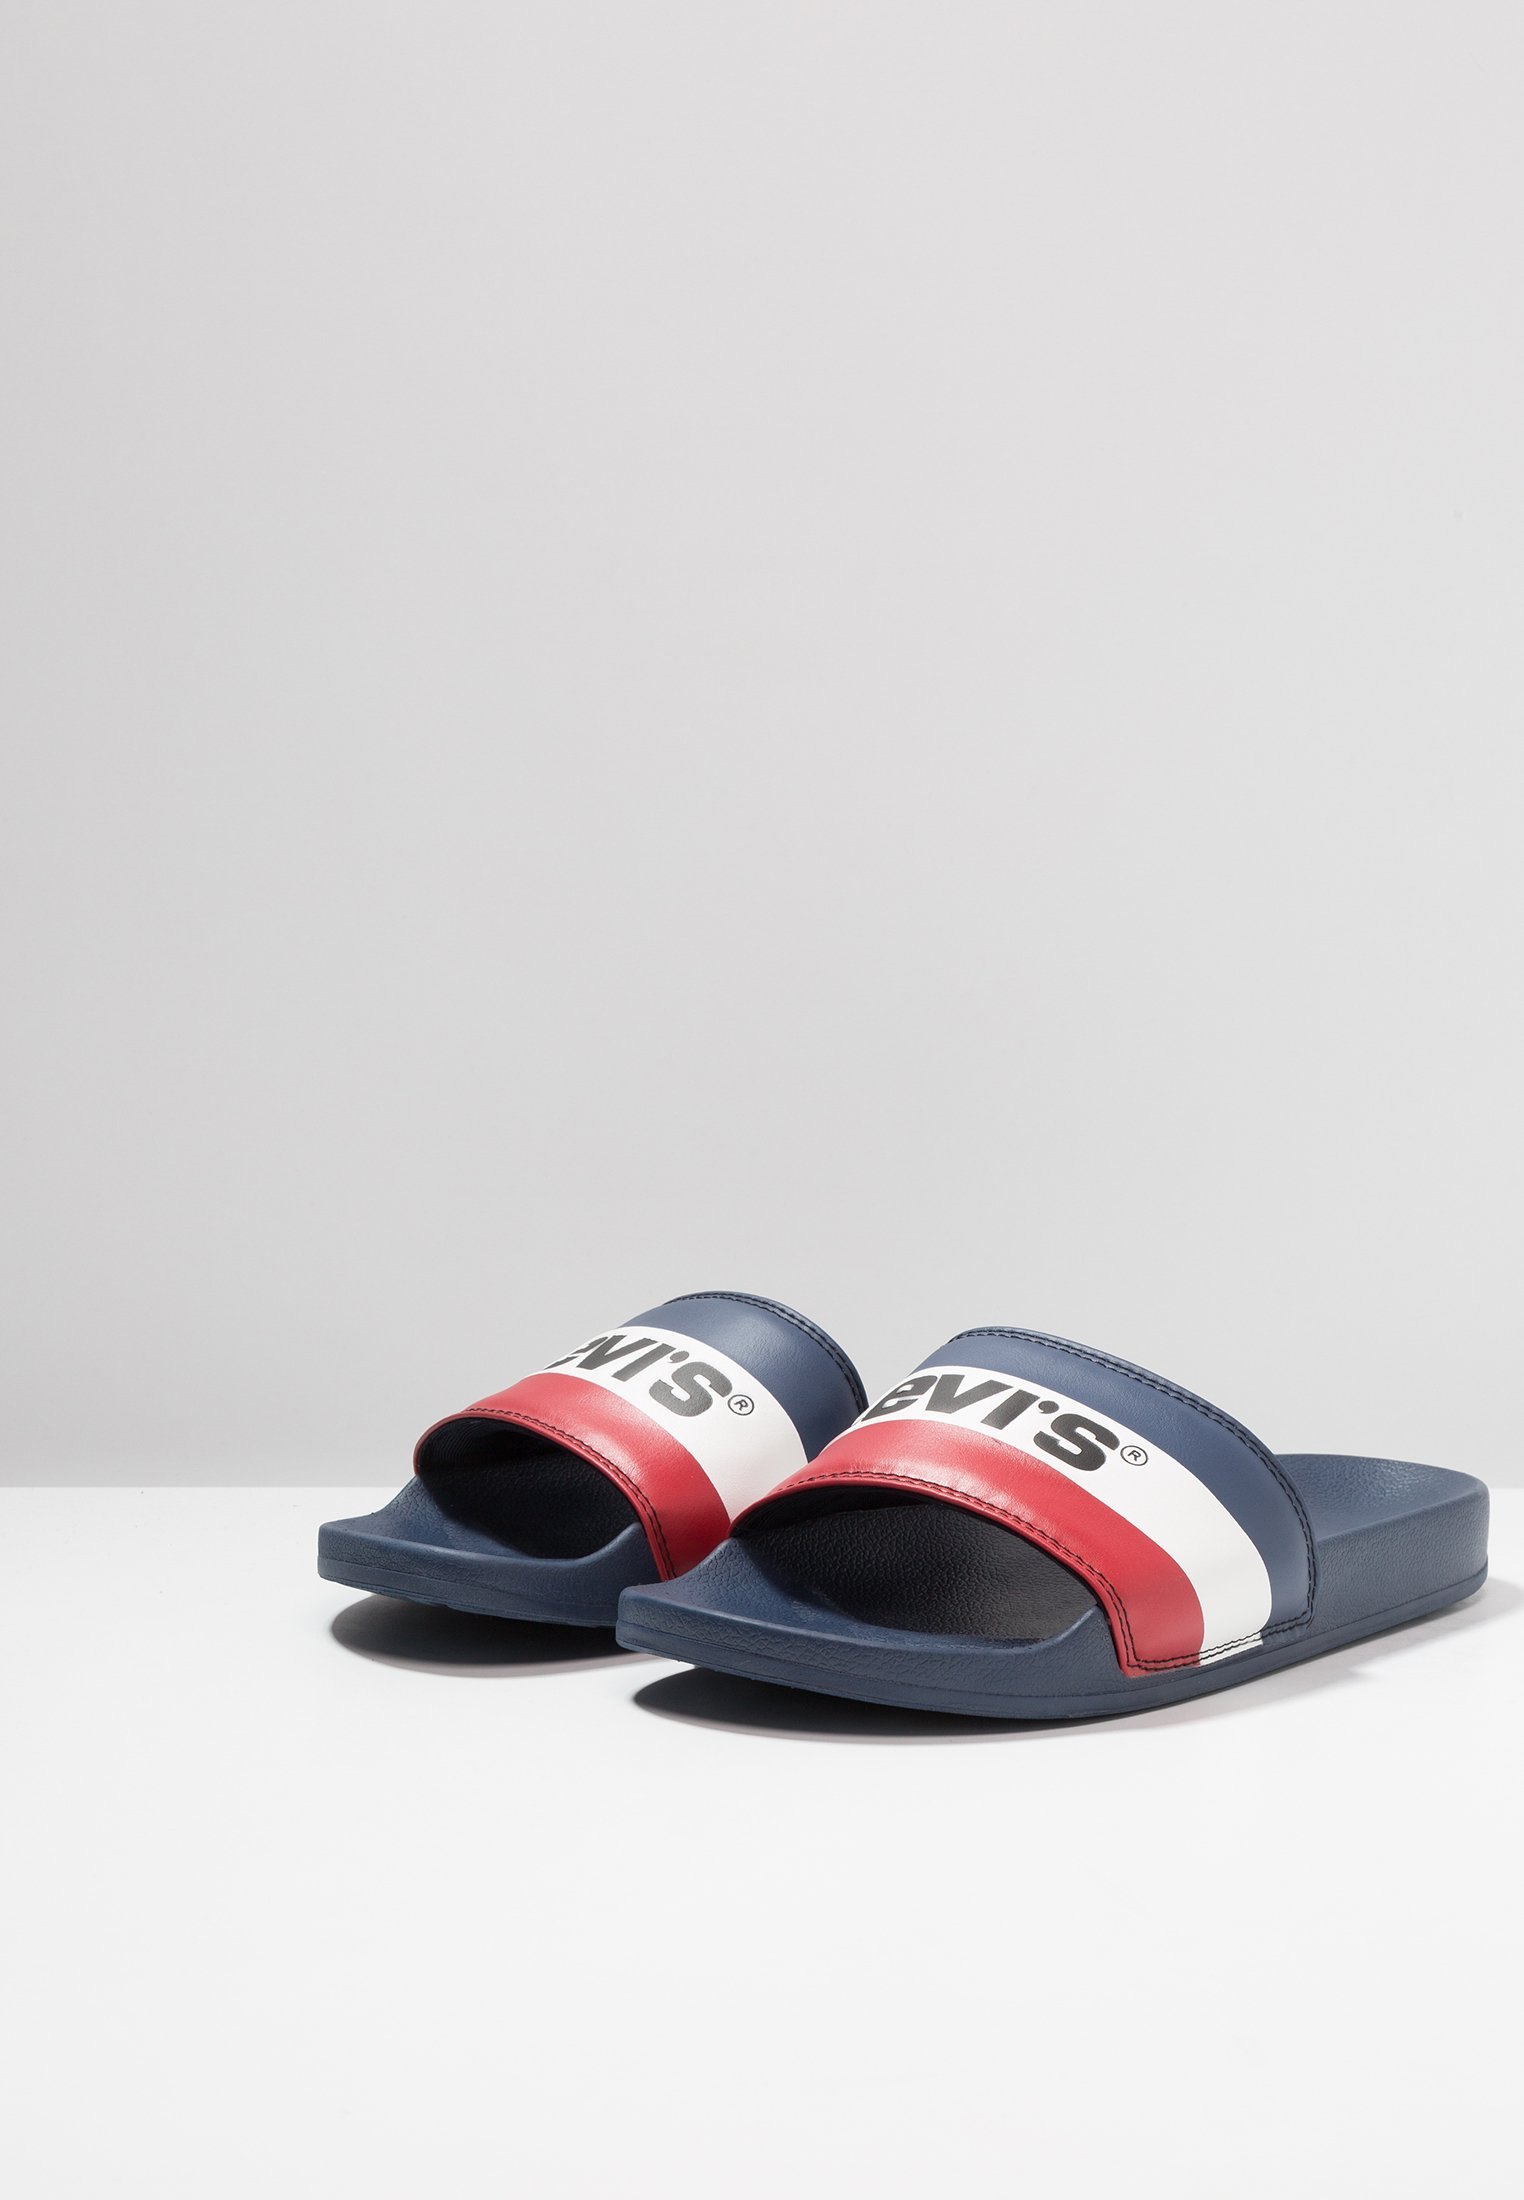 Levi's® Levi's® Royal June Royal June SportswearMules Blue SportswearMules Igyv76Yfmb